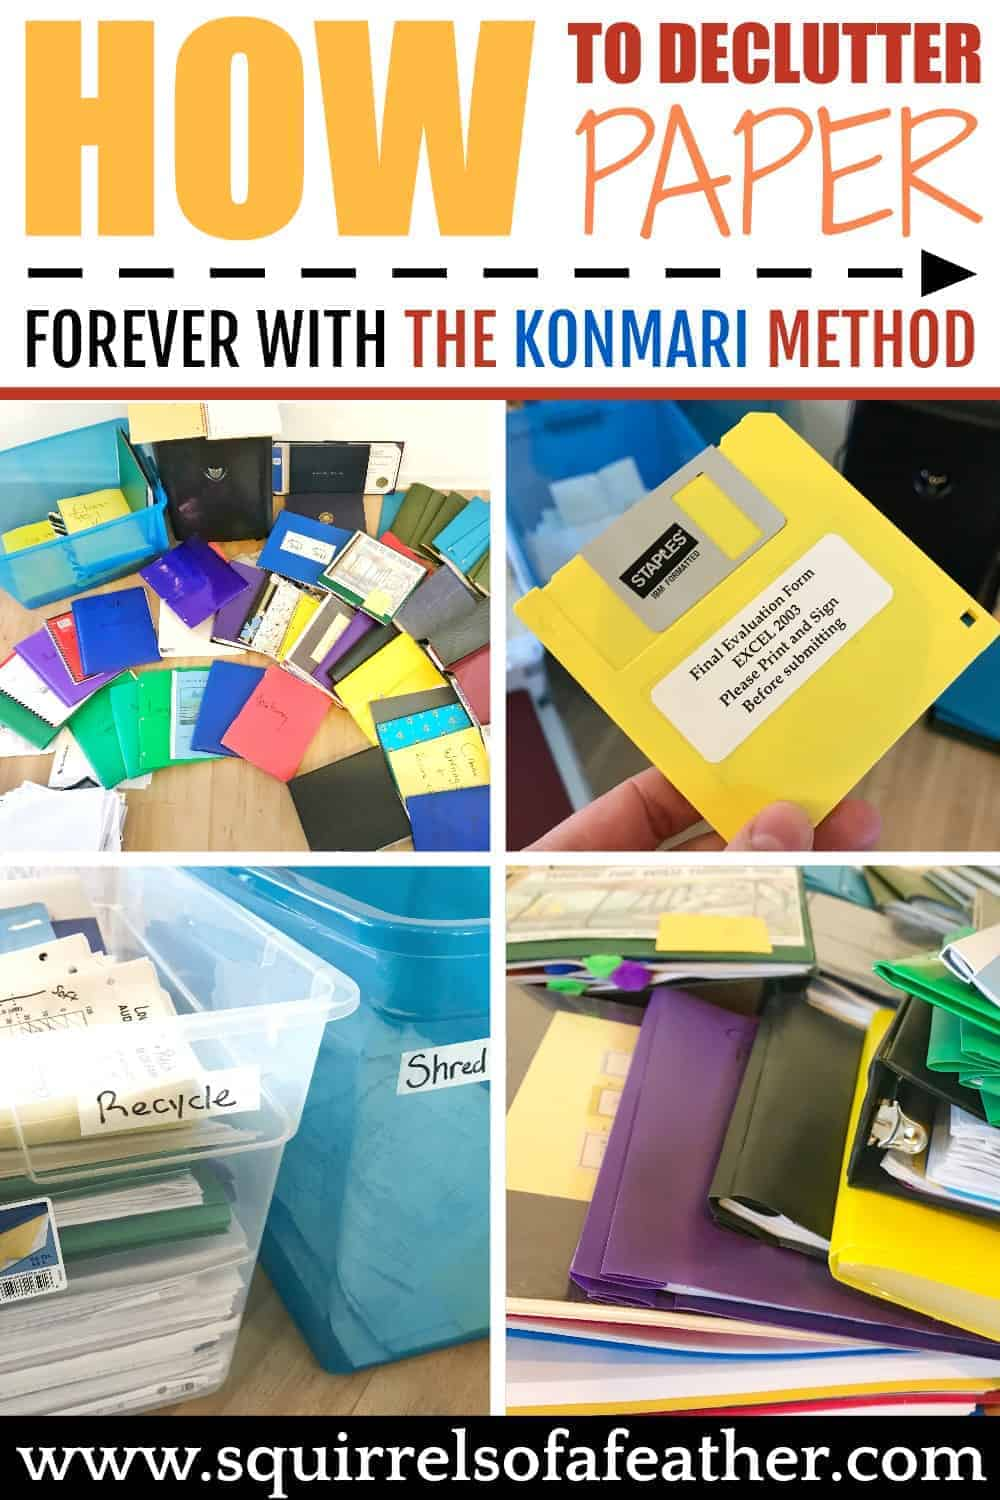 Stages of decluttering paper with the KonMari method